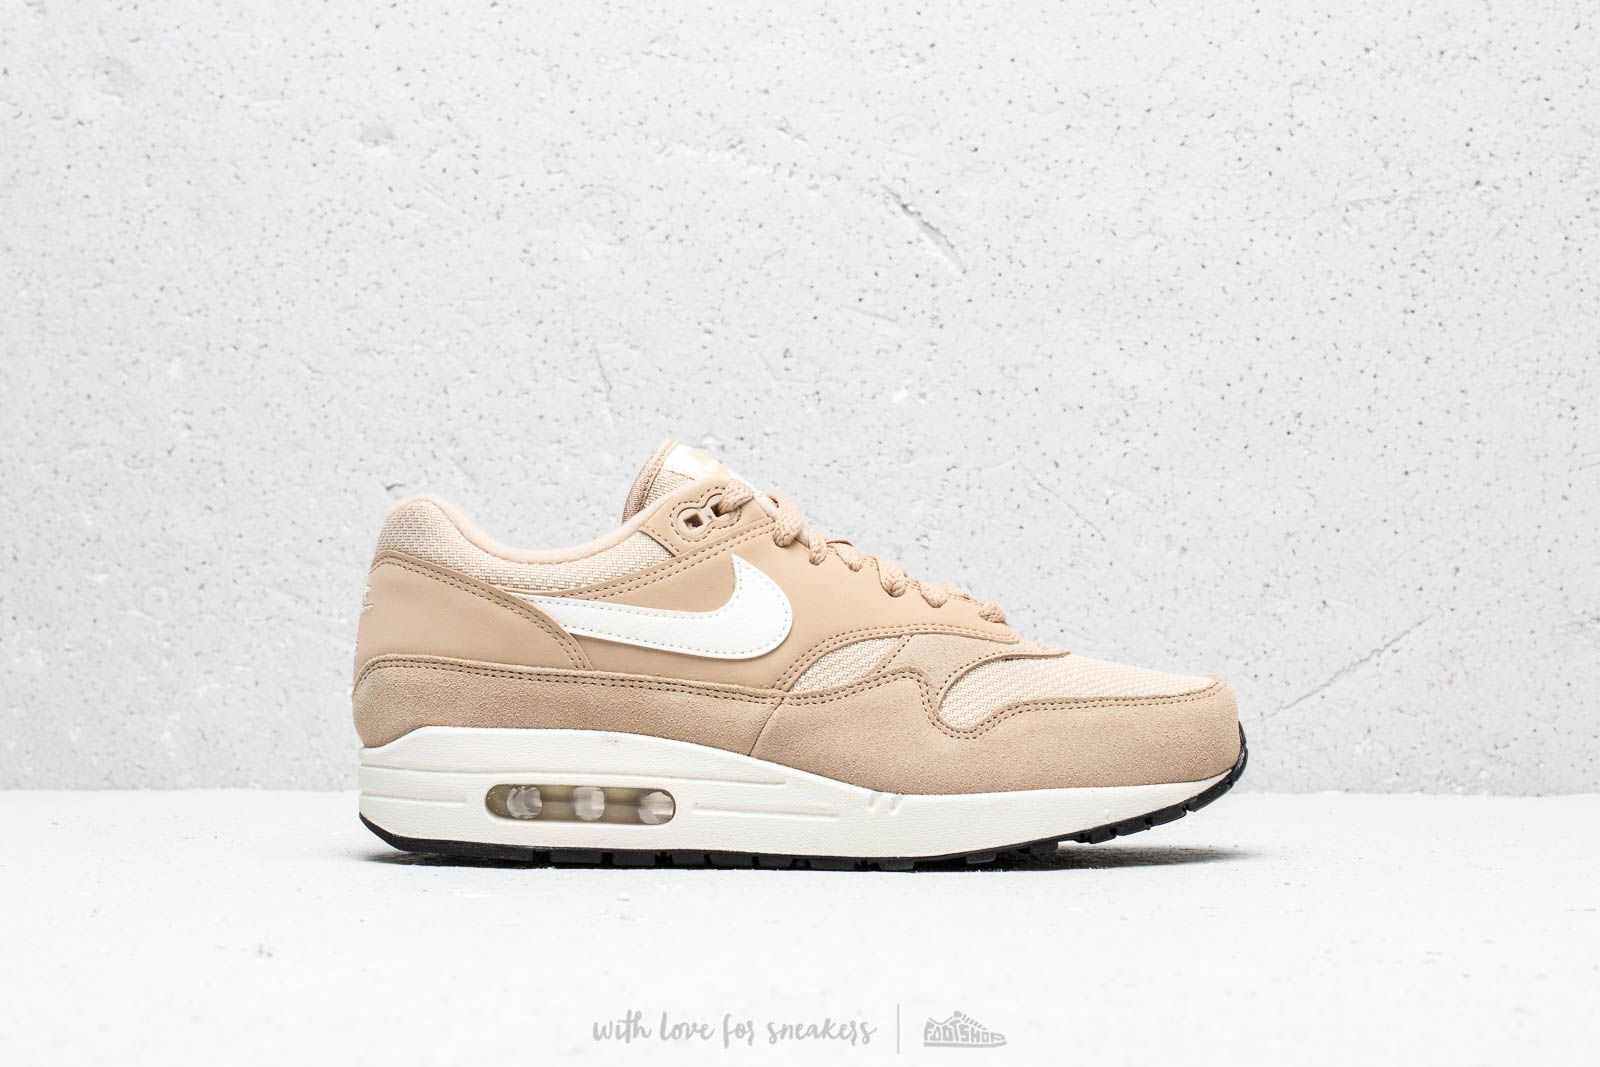 first rate 1ef42 37f2d Nike Air Max 1 Desert Ore  Sail-Sail-Black at a great price